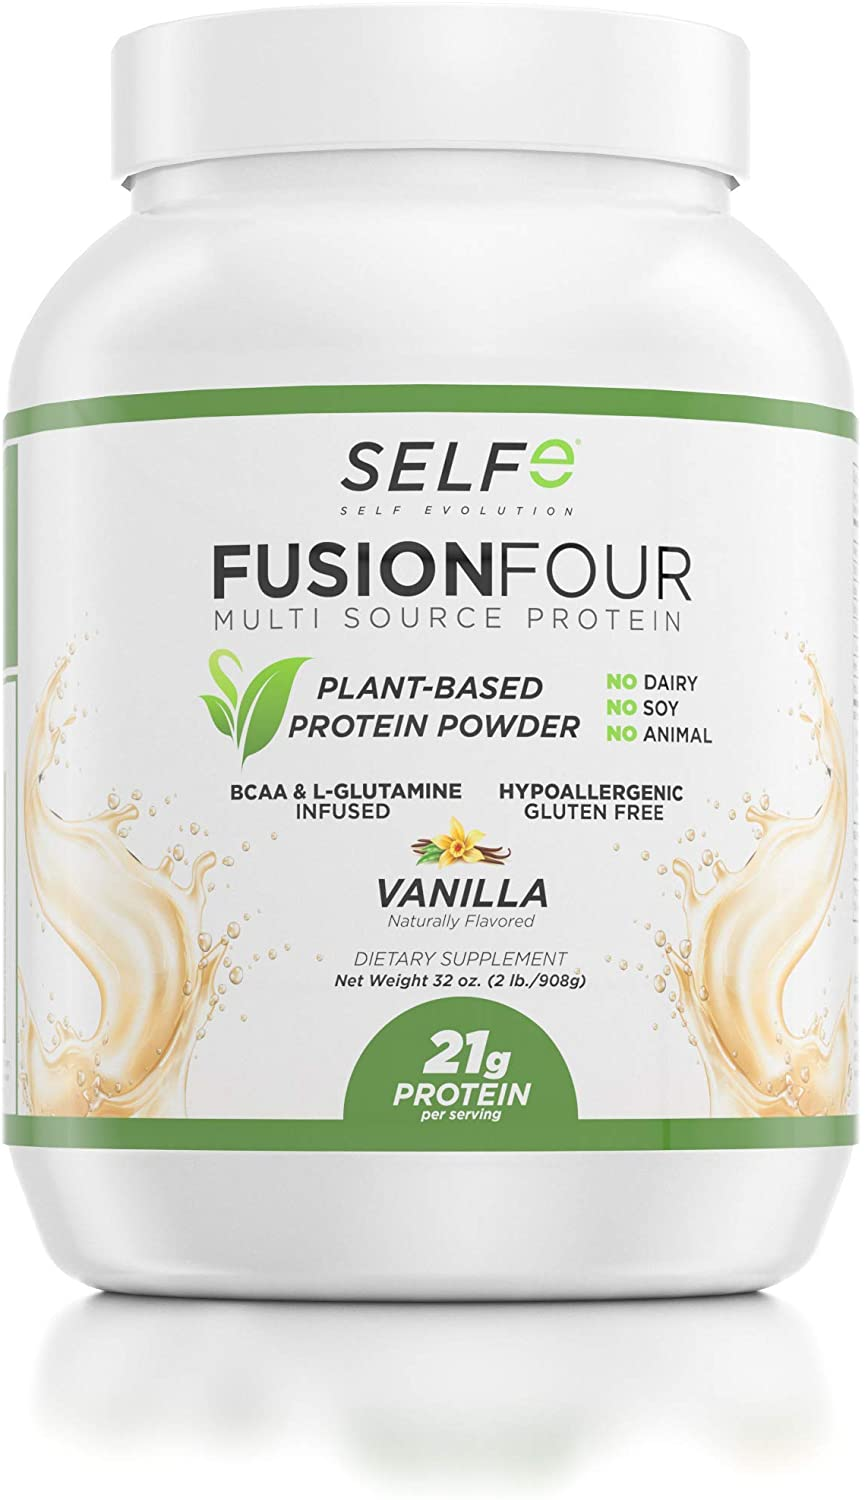 FusionFour Formerly NitroFusion Plant Based Protein Powder - Vegan Protein - Soy, Dairy and Gluten Free - Vanilla - 2lbs